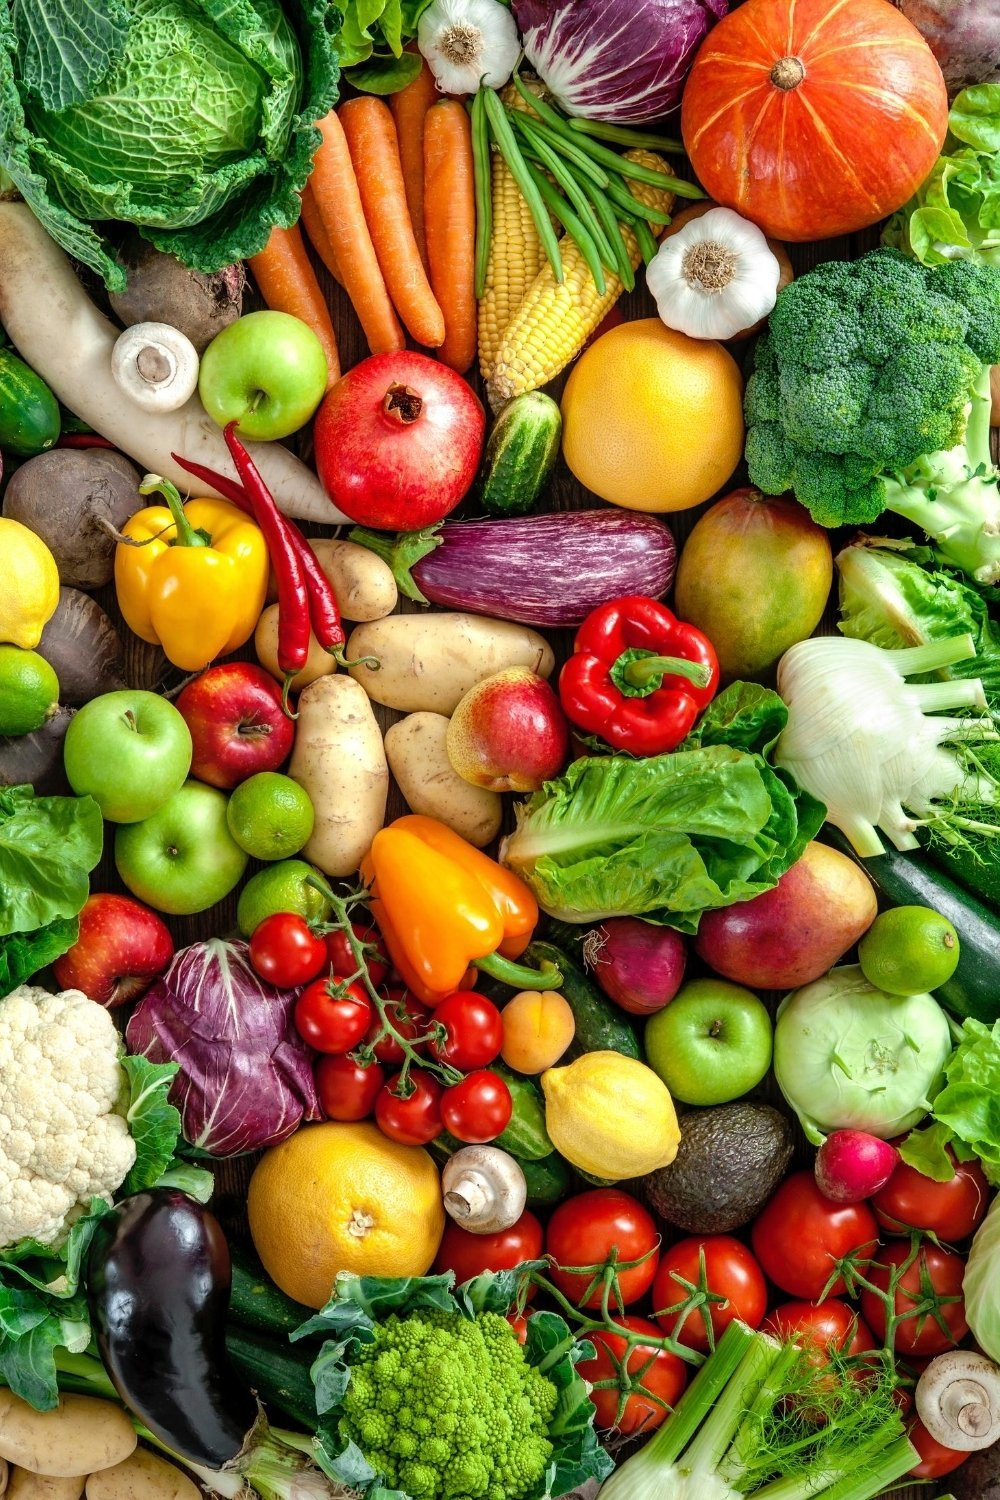 Naturally gluten free fruits and vegetables